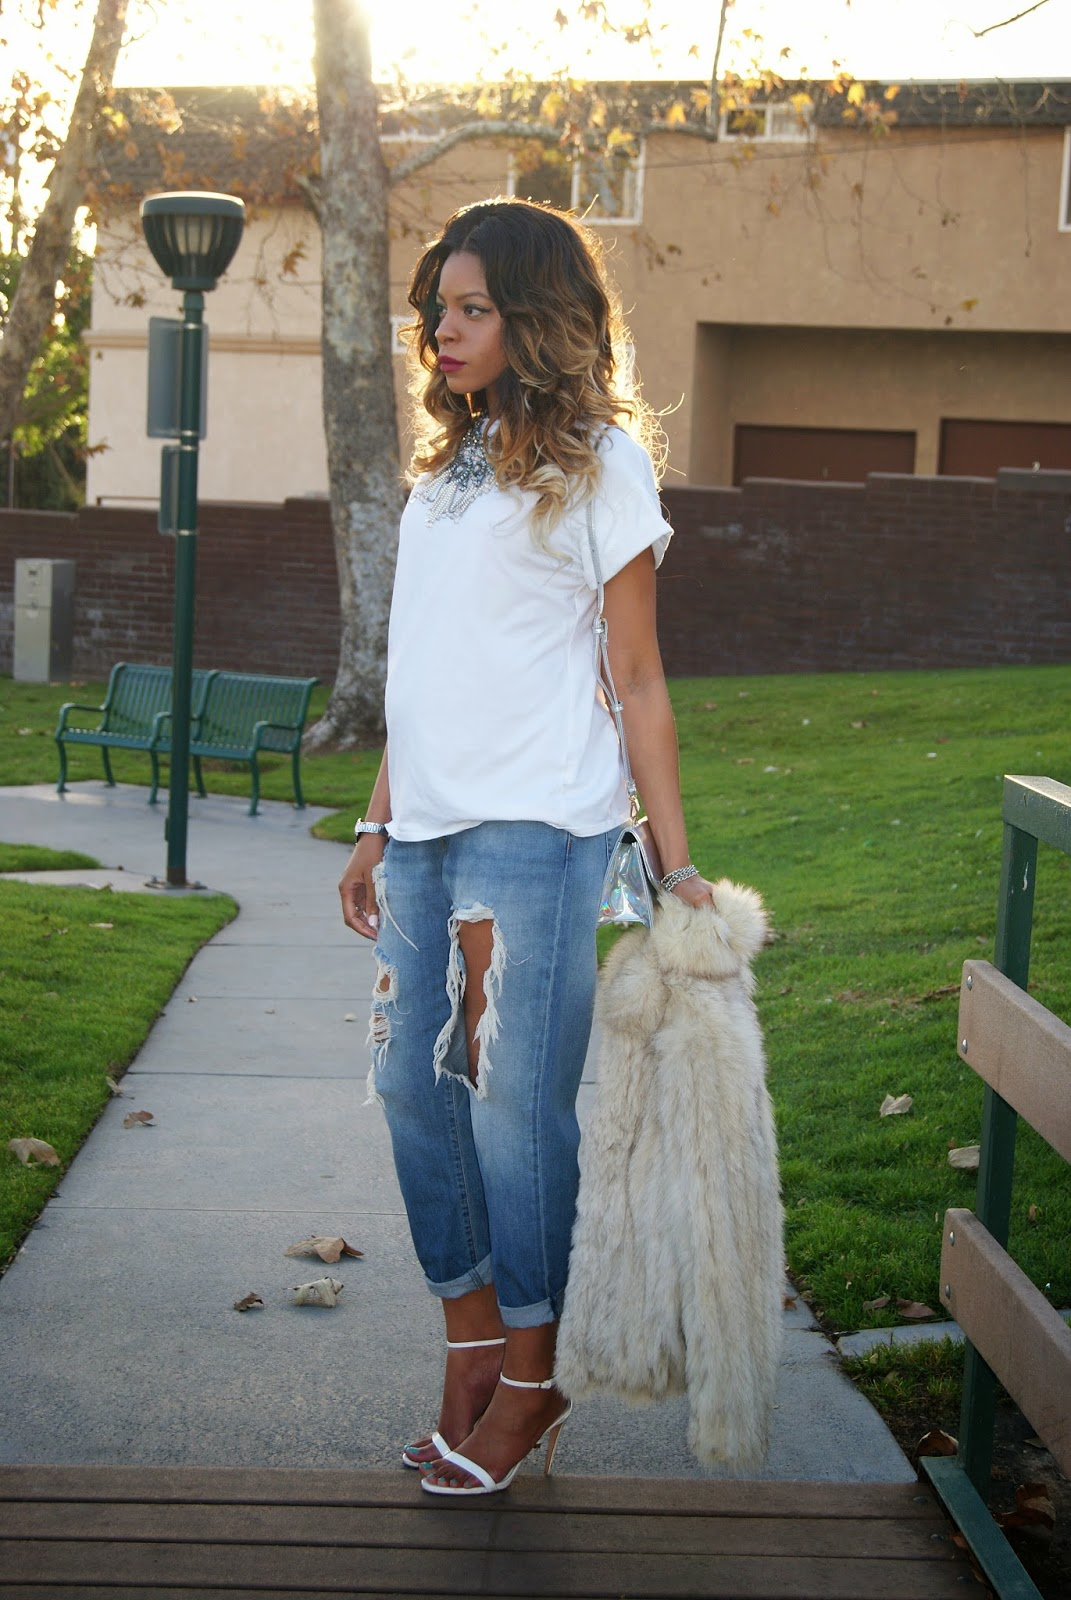 maternity style, casual chic, fur, ombre hair, statement necklace, allthingsslim,